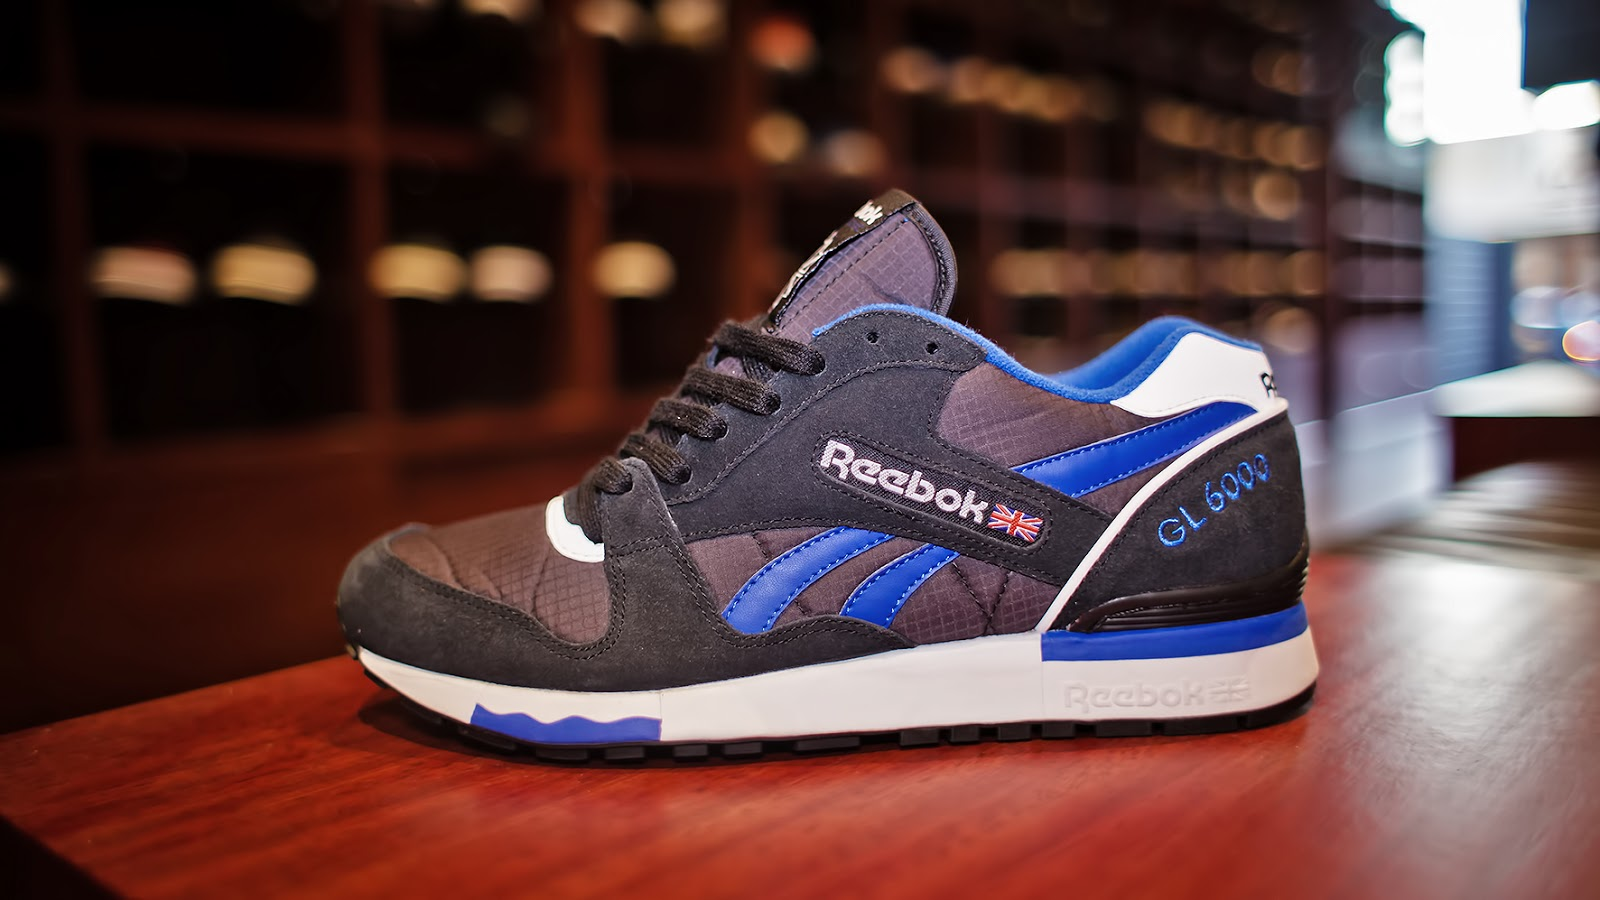 944ec058e64 I Dig Your Sole Man  Reebok Round Up  Exclusive